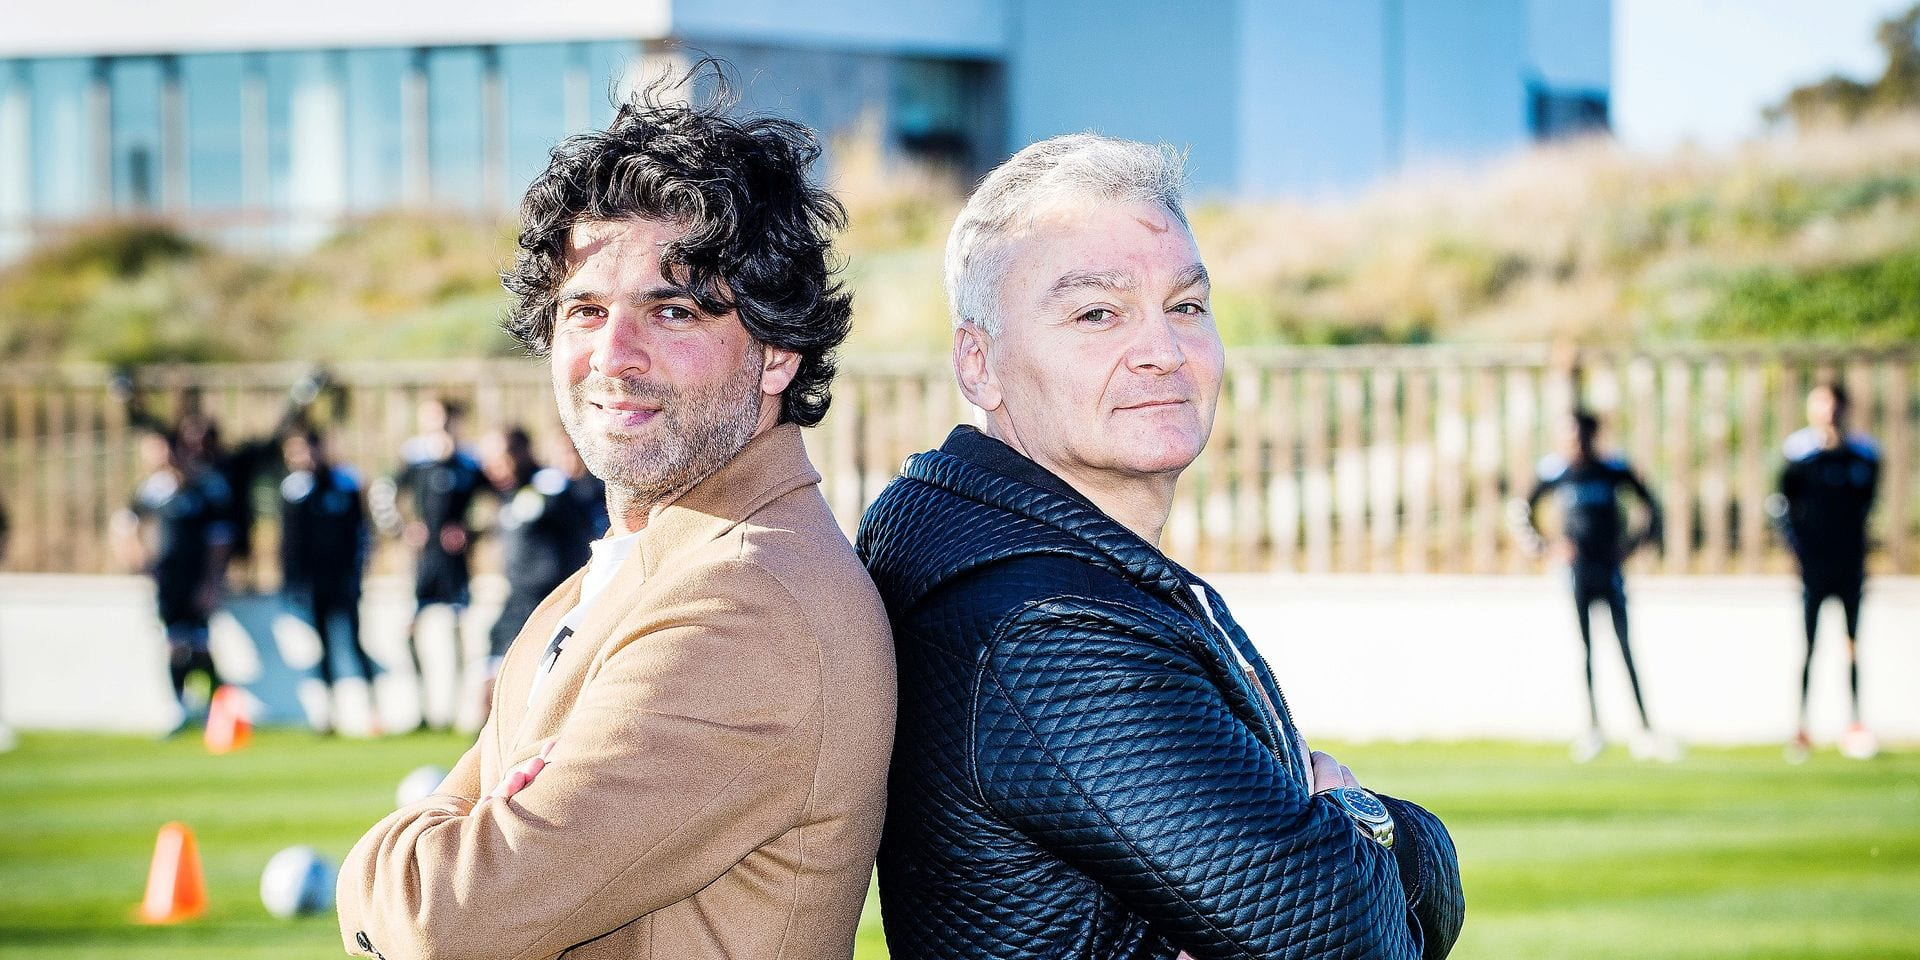 Charleroi's manager Mehdi Bayat and Charleroi's chairman, QNT CEO Fabien Debecq pose for the photographer on the fifth day of the winter training camp of Belgian first division soccer team Sporting Charleroi, in Valencia, Spain, Wednesday 09 January 2019. BELGA PHOTO LAURIE DIEFFEMBACQ